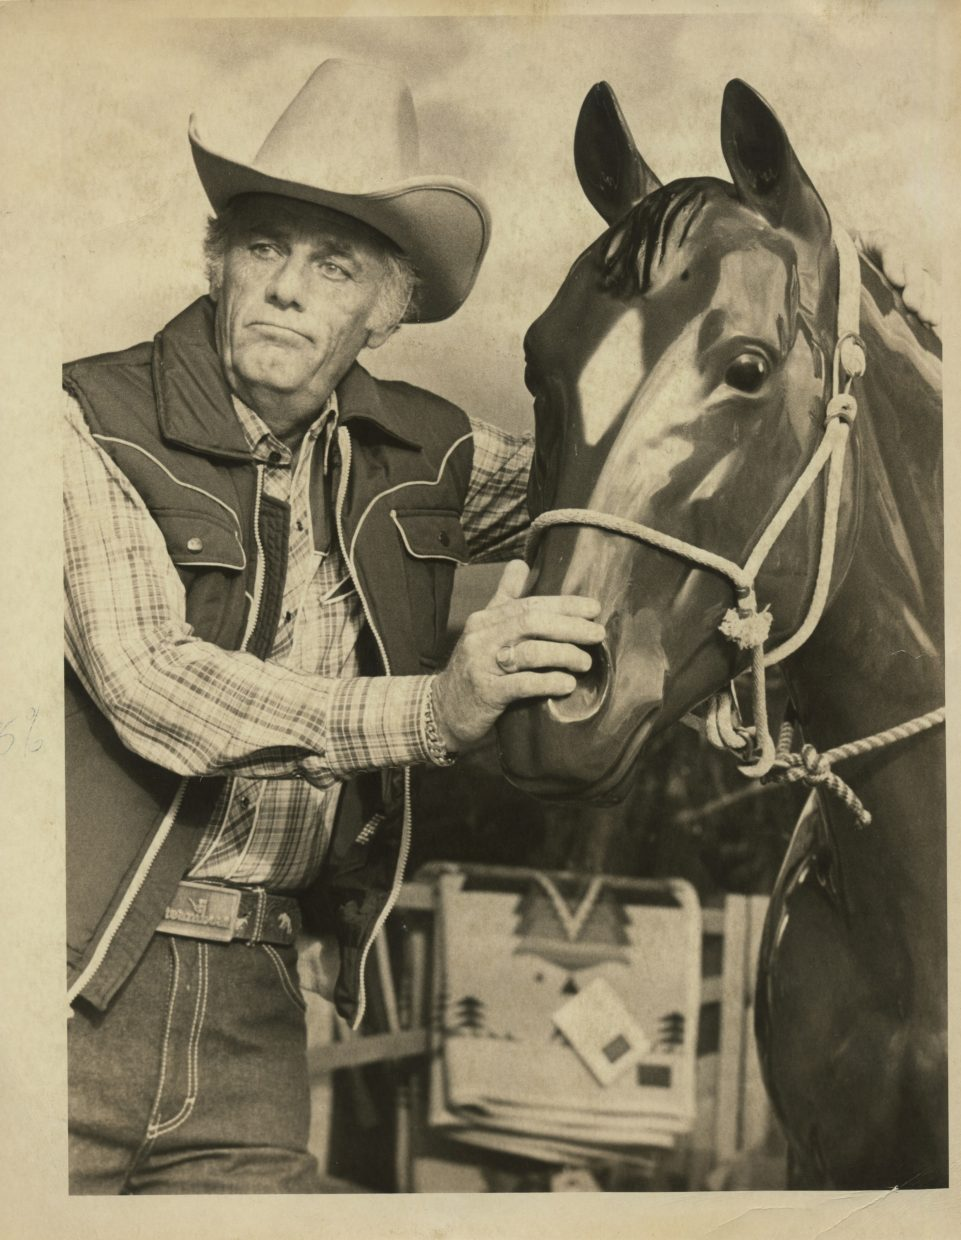 """Actor McLean Stevenson of """"MASH"""" television fame  clowns with  Flash, the F.M. Light & Sons horse  in October  1981 while taping  a syndicated holiday television program for the Steamboat Ski & Resort Corp.     Stephenson won a Golden Globe in 1973 for his portrayal of Lt. Colonel Henry Blake, the conflicted chief surgeon and commanding officer of a Mobile Army Surgical Hospital during the Korean War. Stevenson died in 1996.   photo: Ross Dolan"""